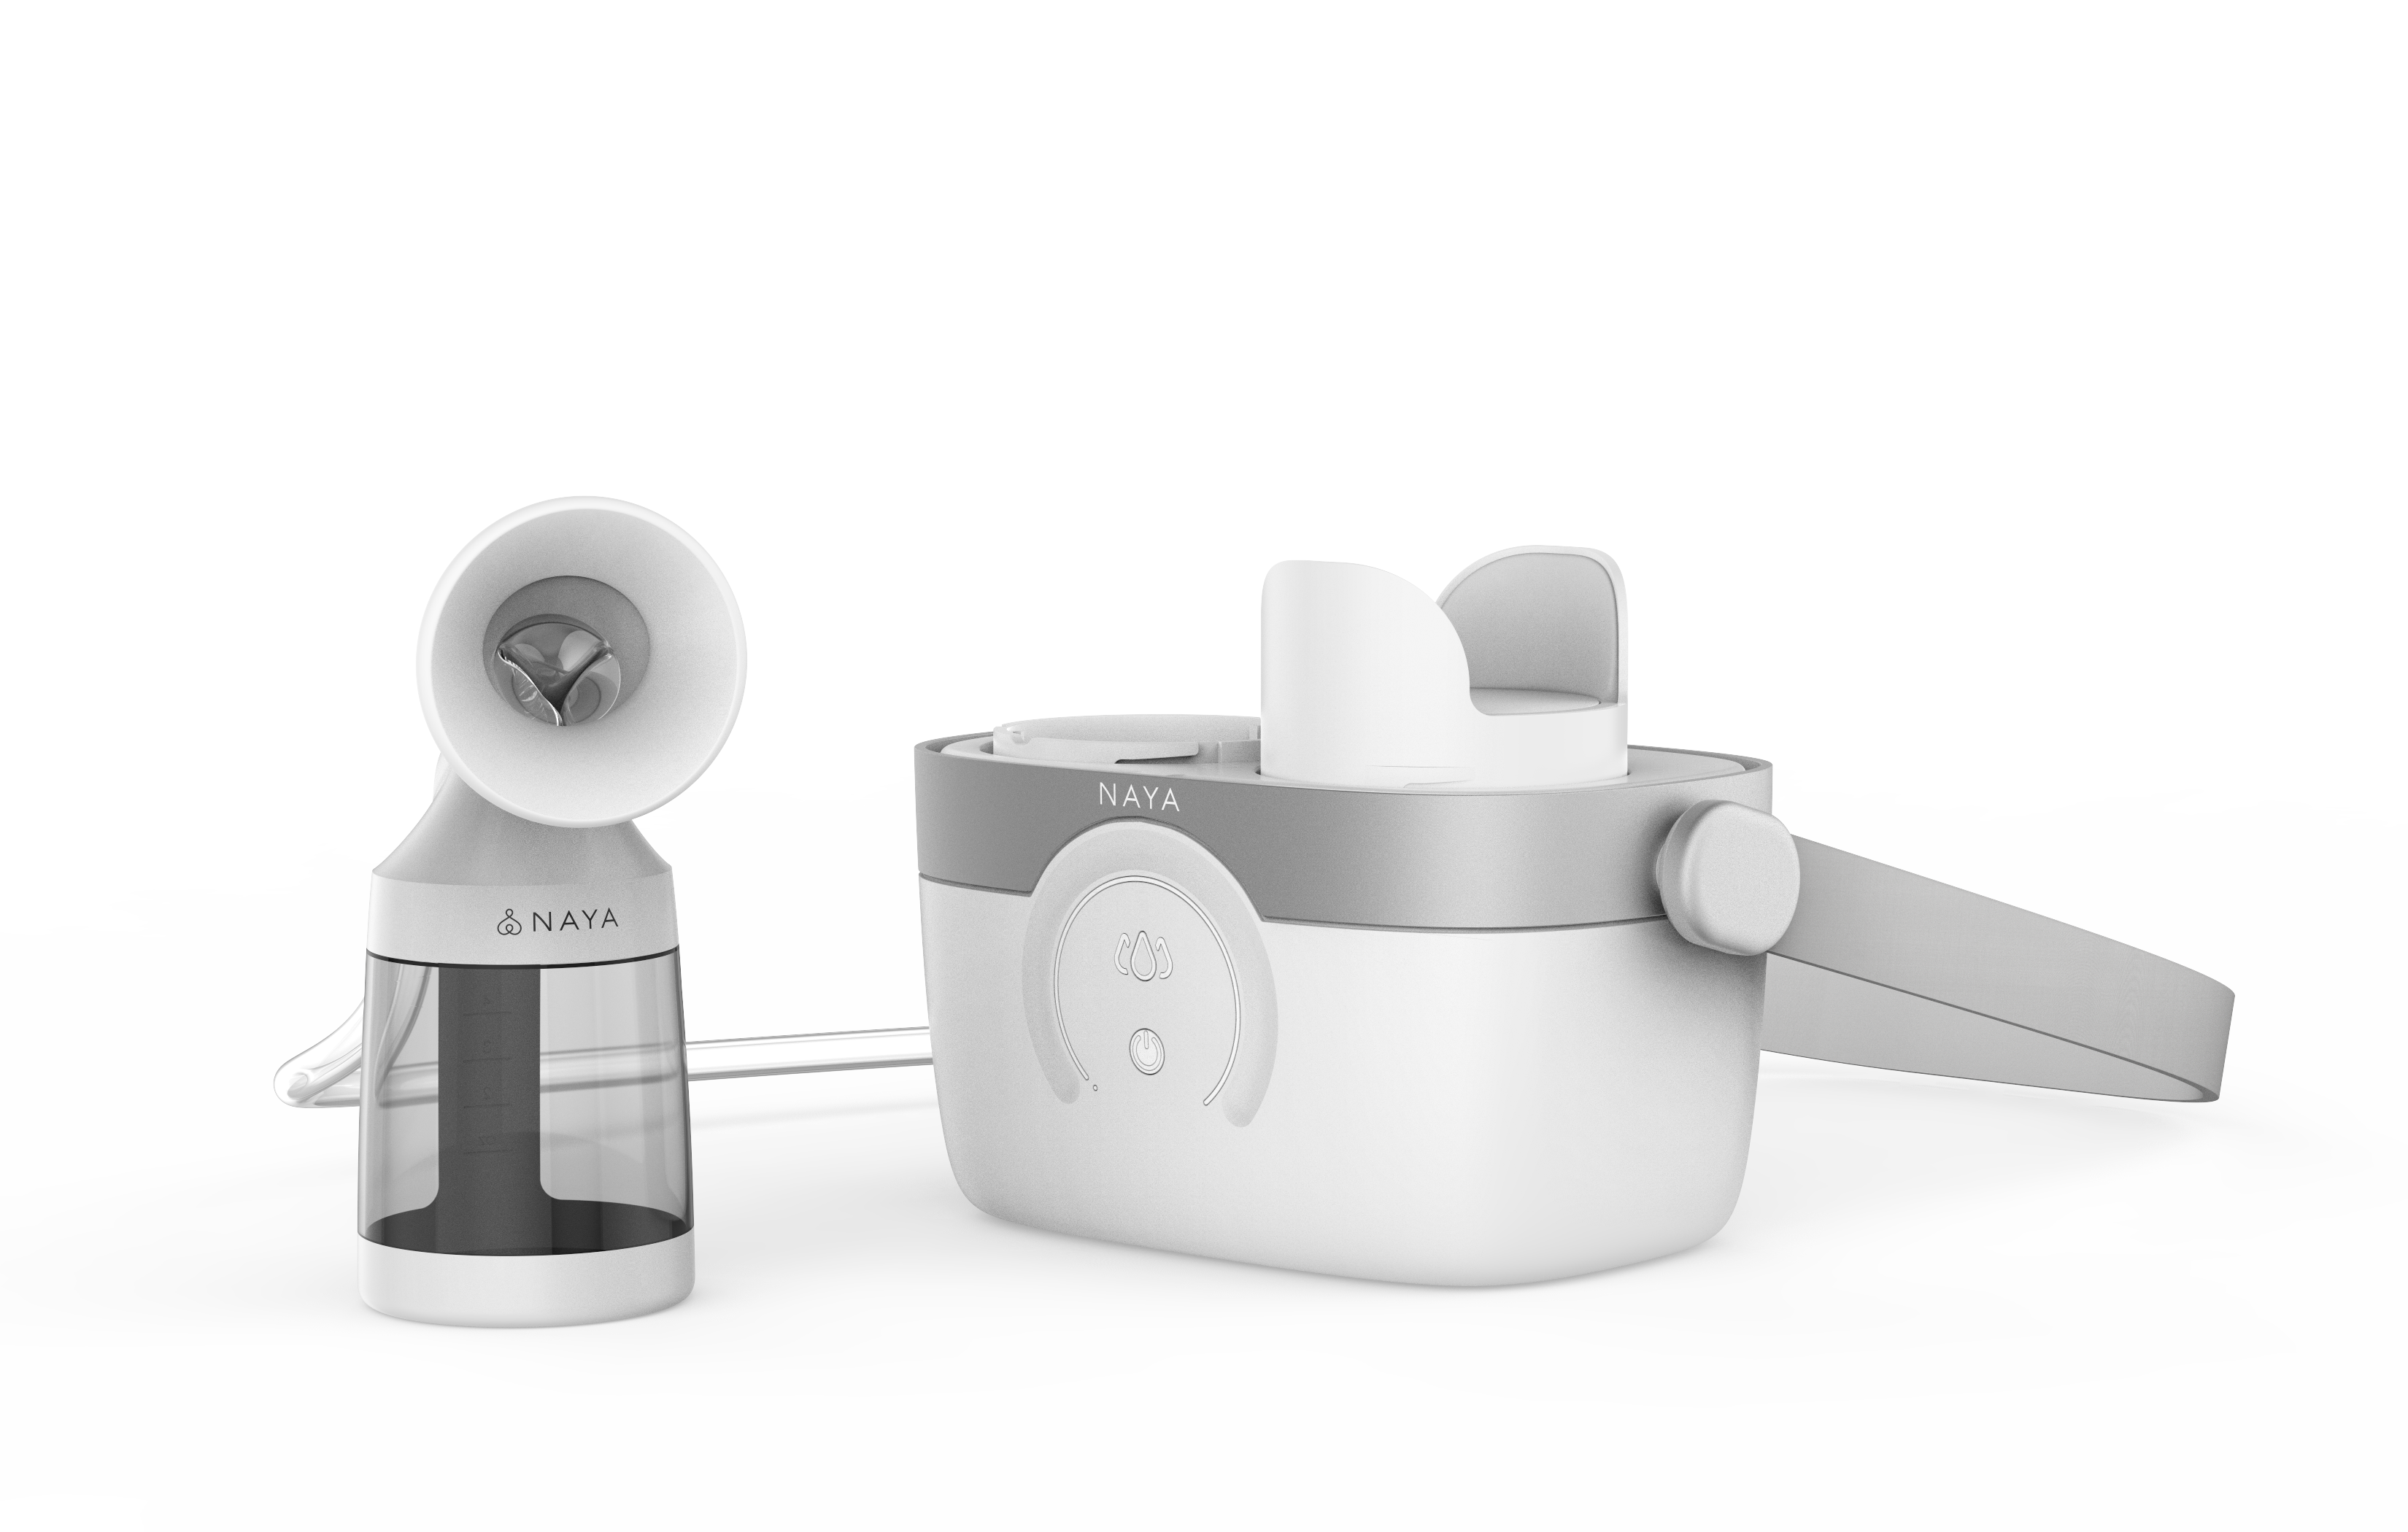 Naya Health is taking orders for a breast pump that uses a water-based hydraulic system. Plus, there's an app to track pumping sessions.